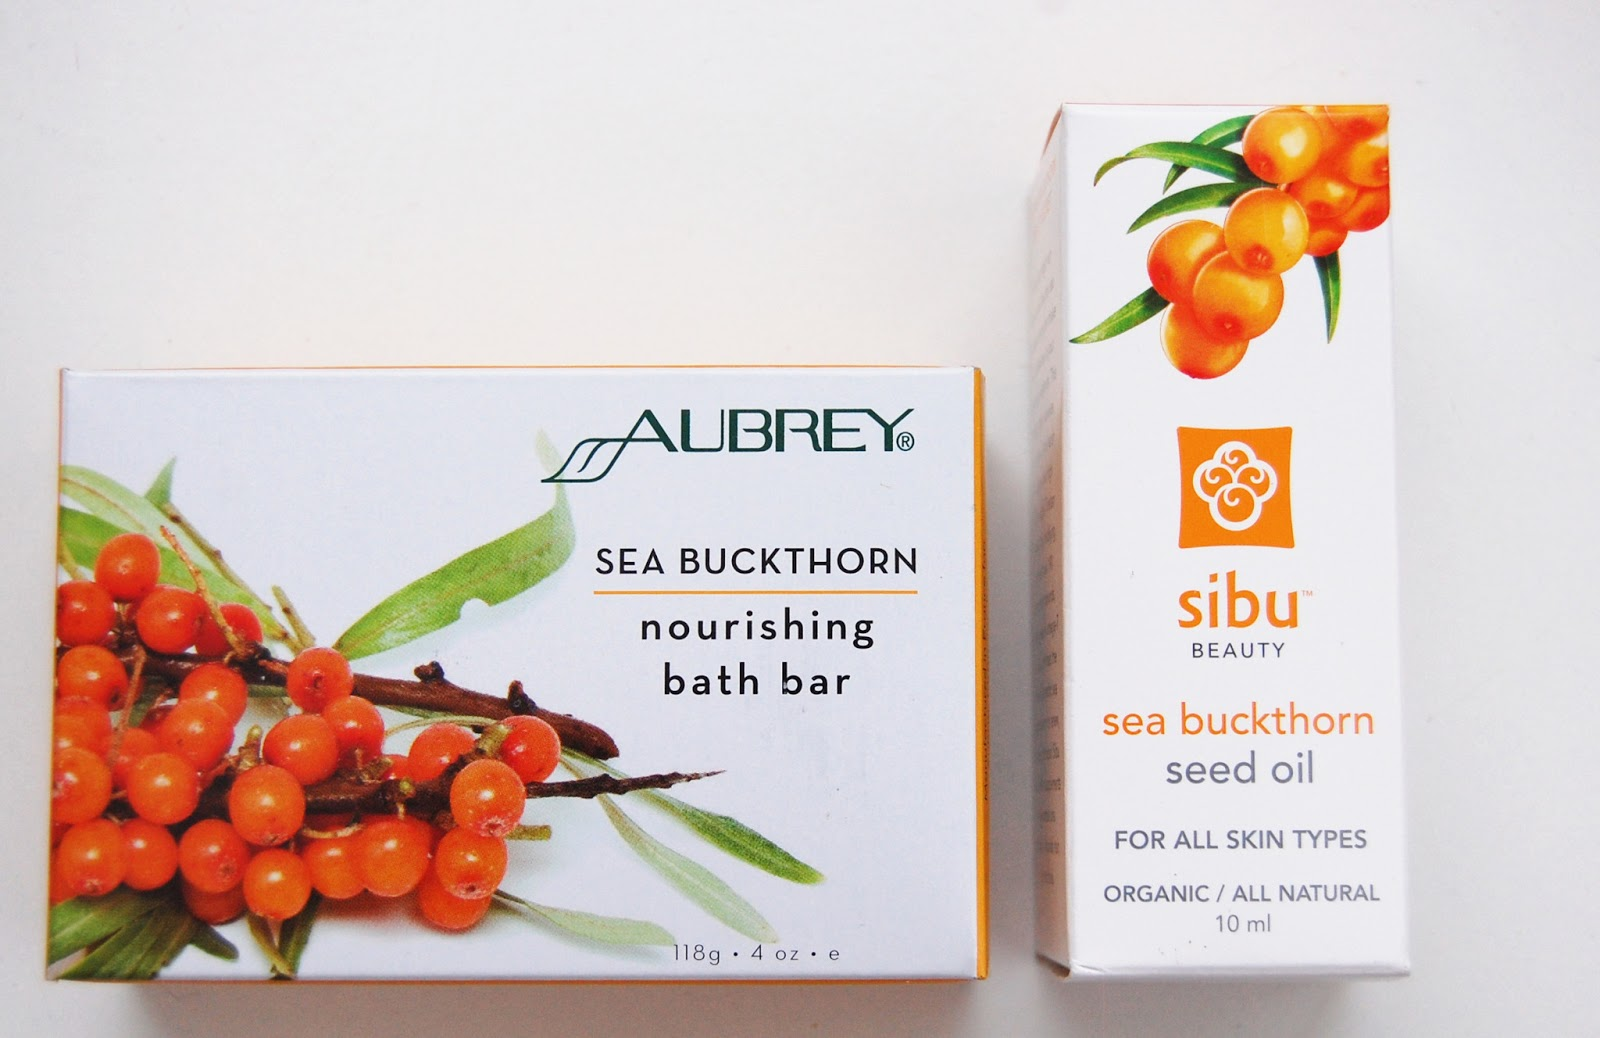 Aubrey-Sea Buckthorn Bar, Sibu Beauty-Sea Buckthorn Seed Oil